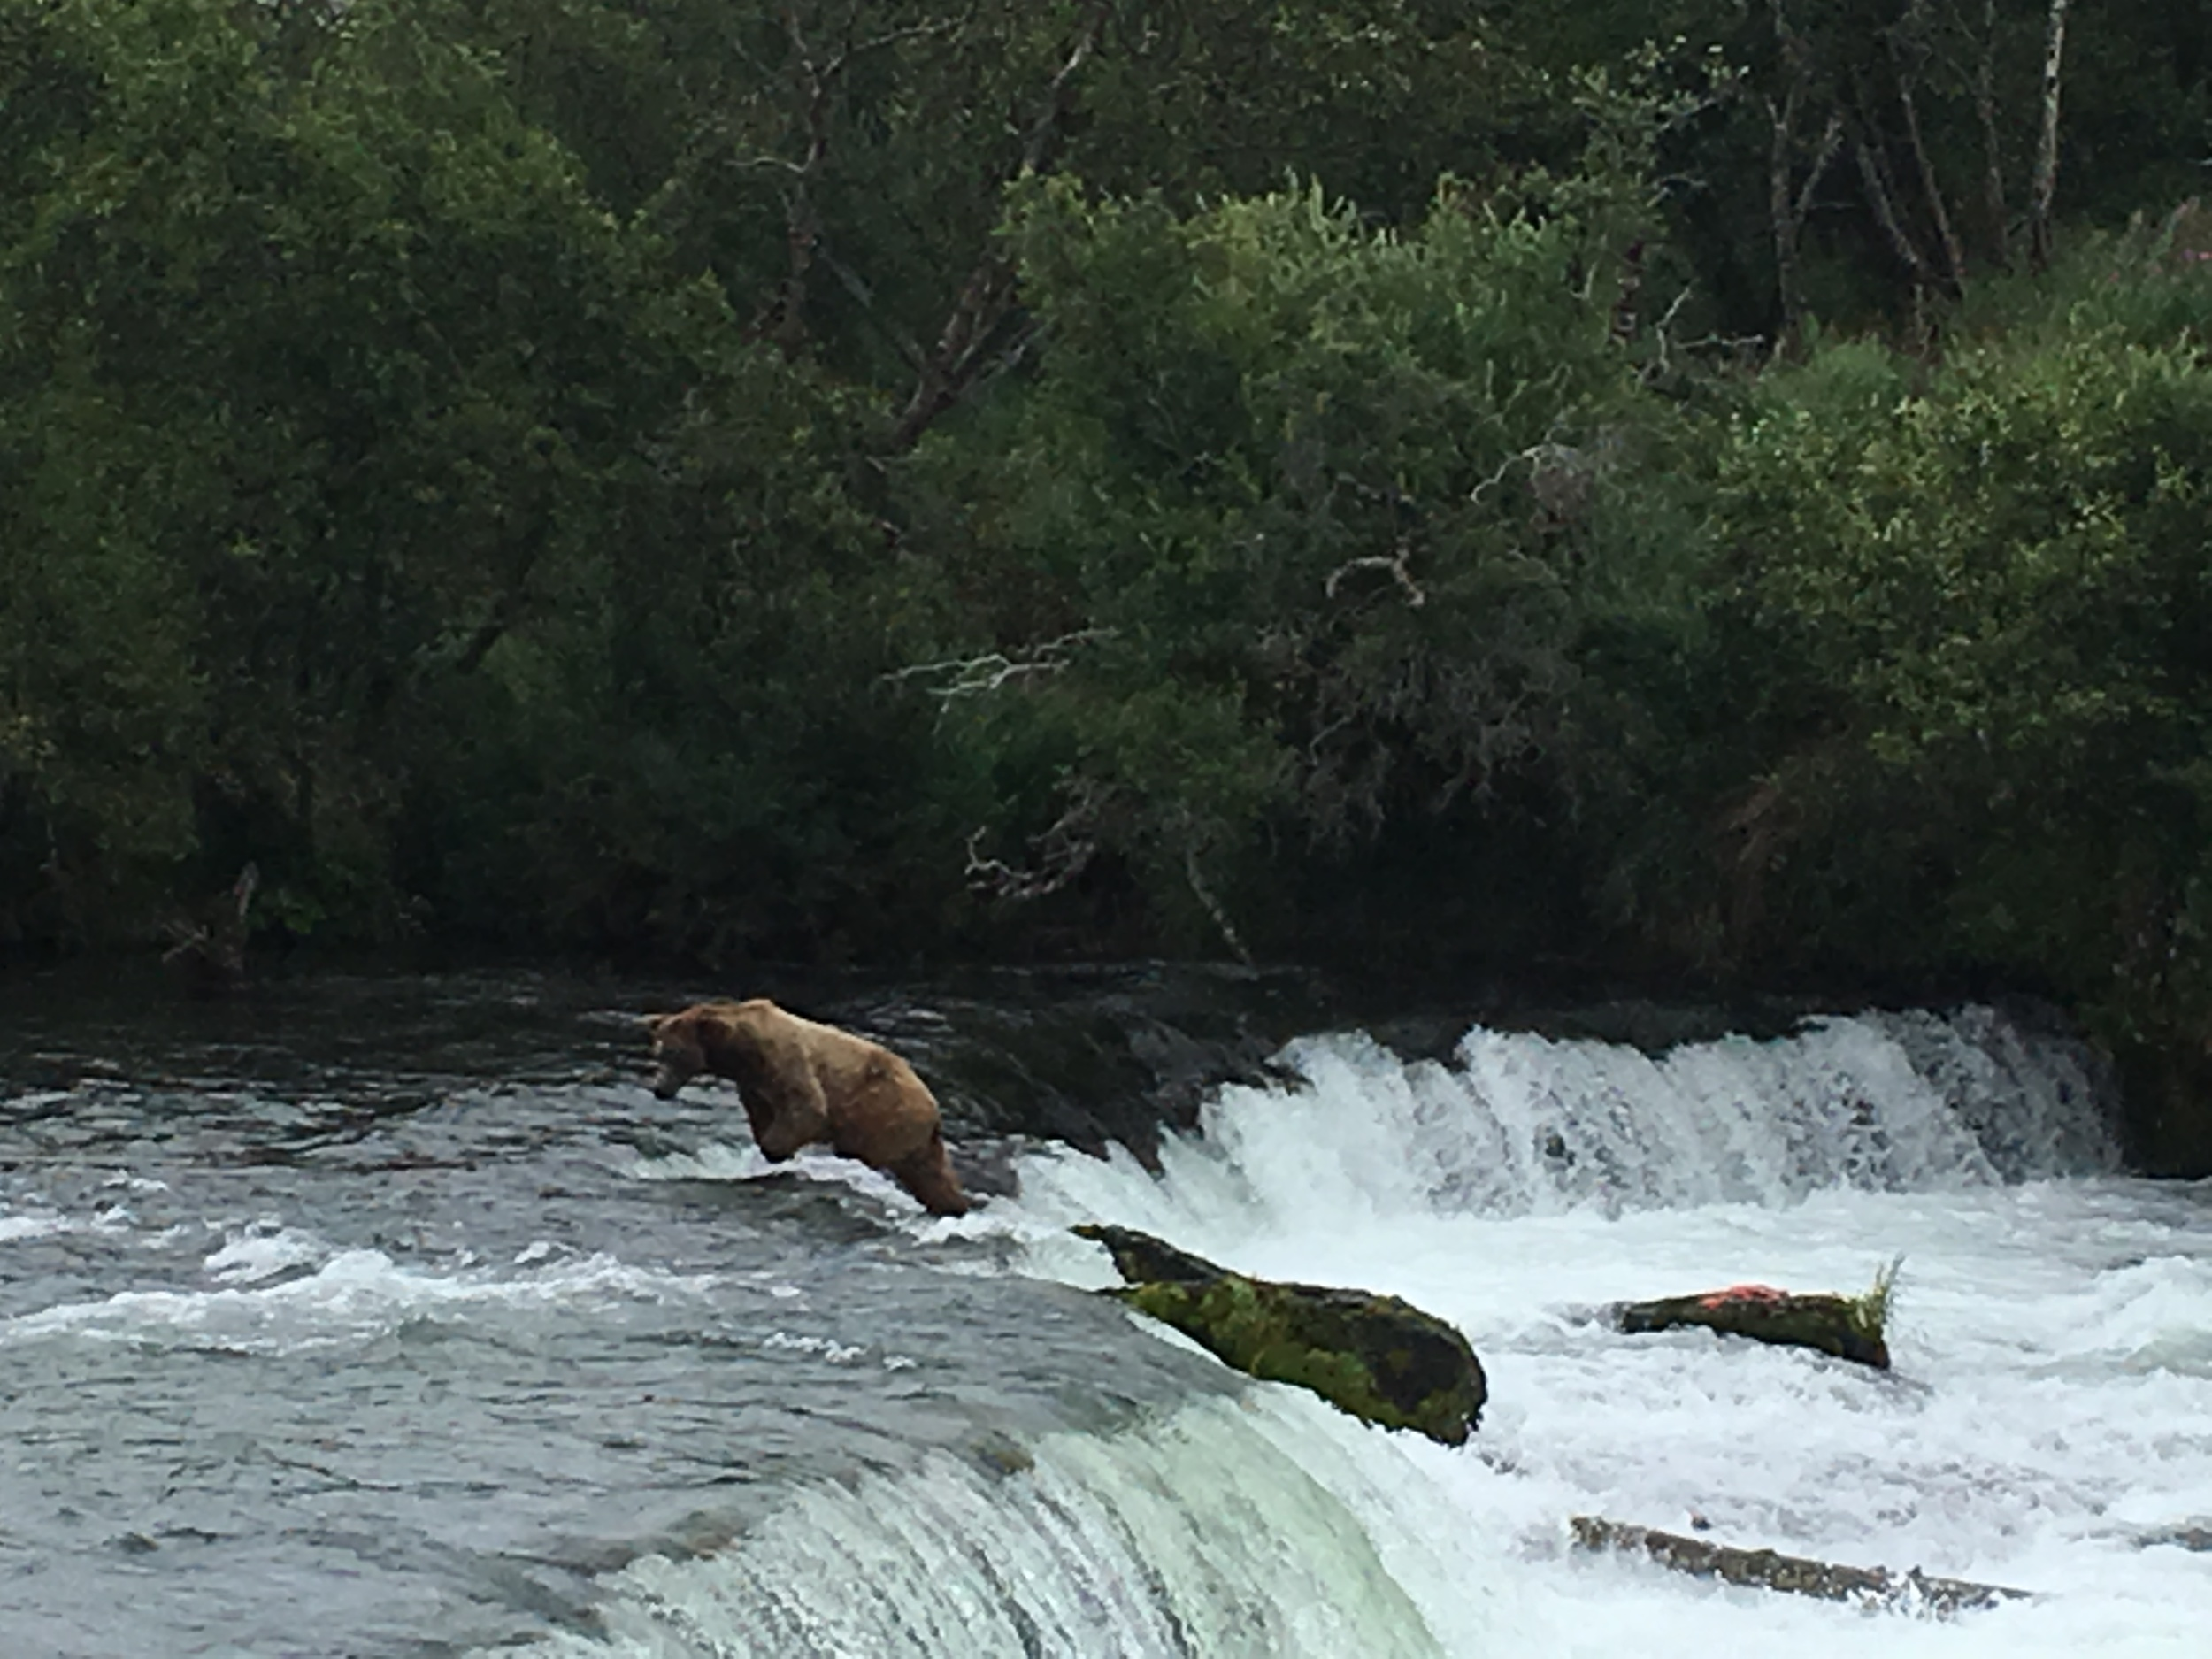 All grizzly bears are brown bears, but not vice versa